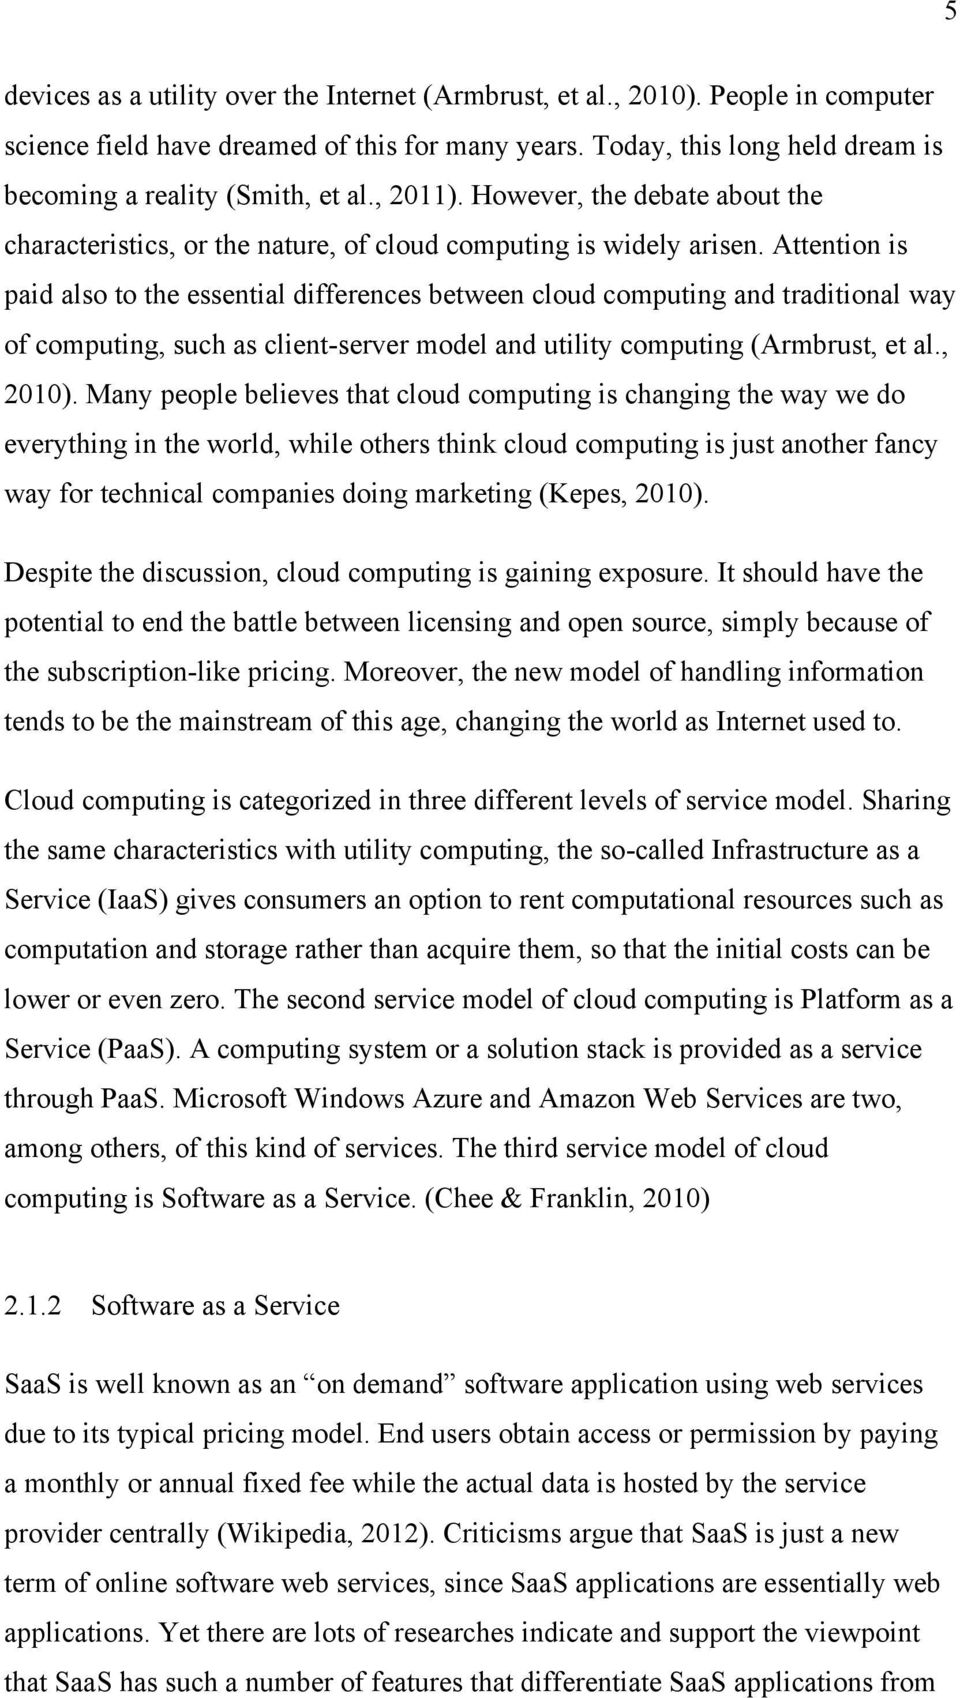 Attention is paid also to the essential differences between cloud computing and traditional way of computing, such as client-server model and utility computing (Armbrust, et al., 2010).